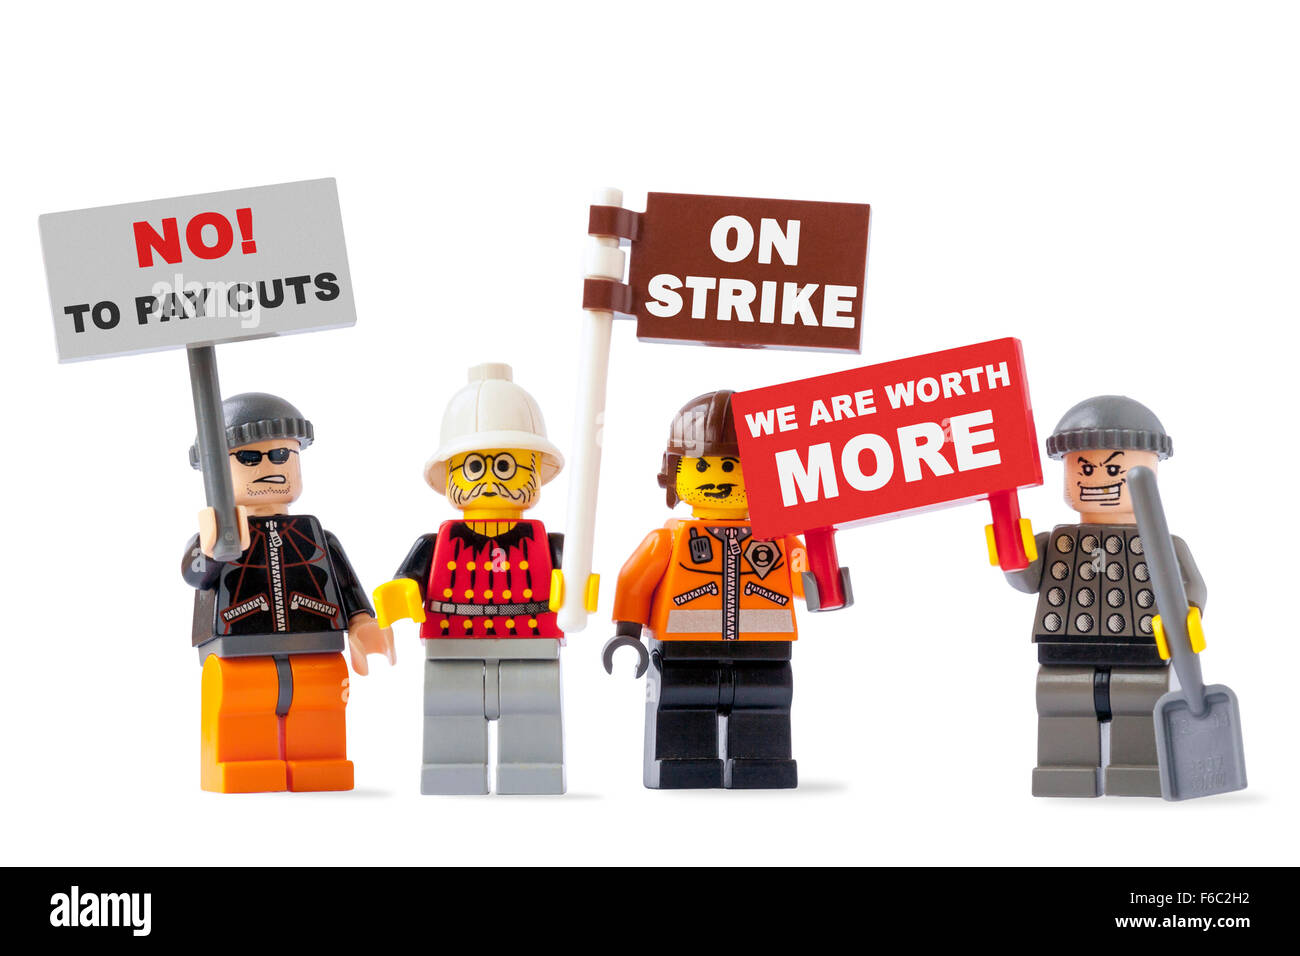 Workers on strike concept with four toy figurines isolated on white background and holding signs with protest messages - Stock Image